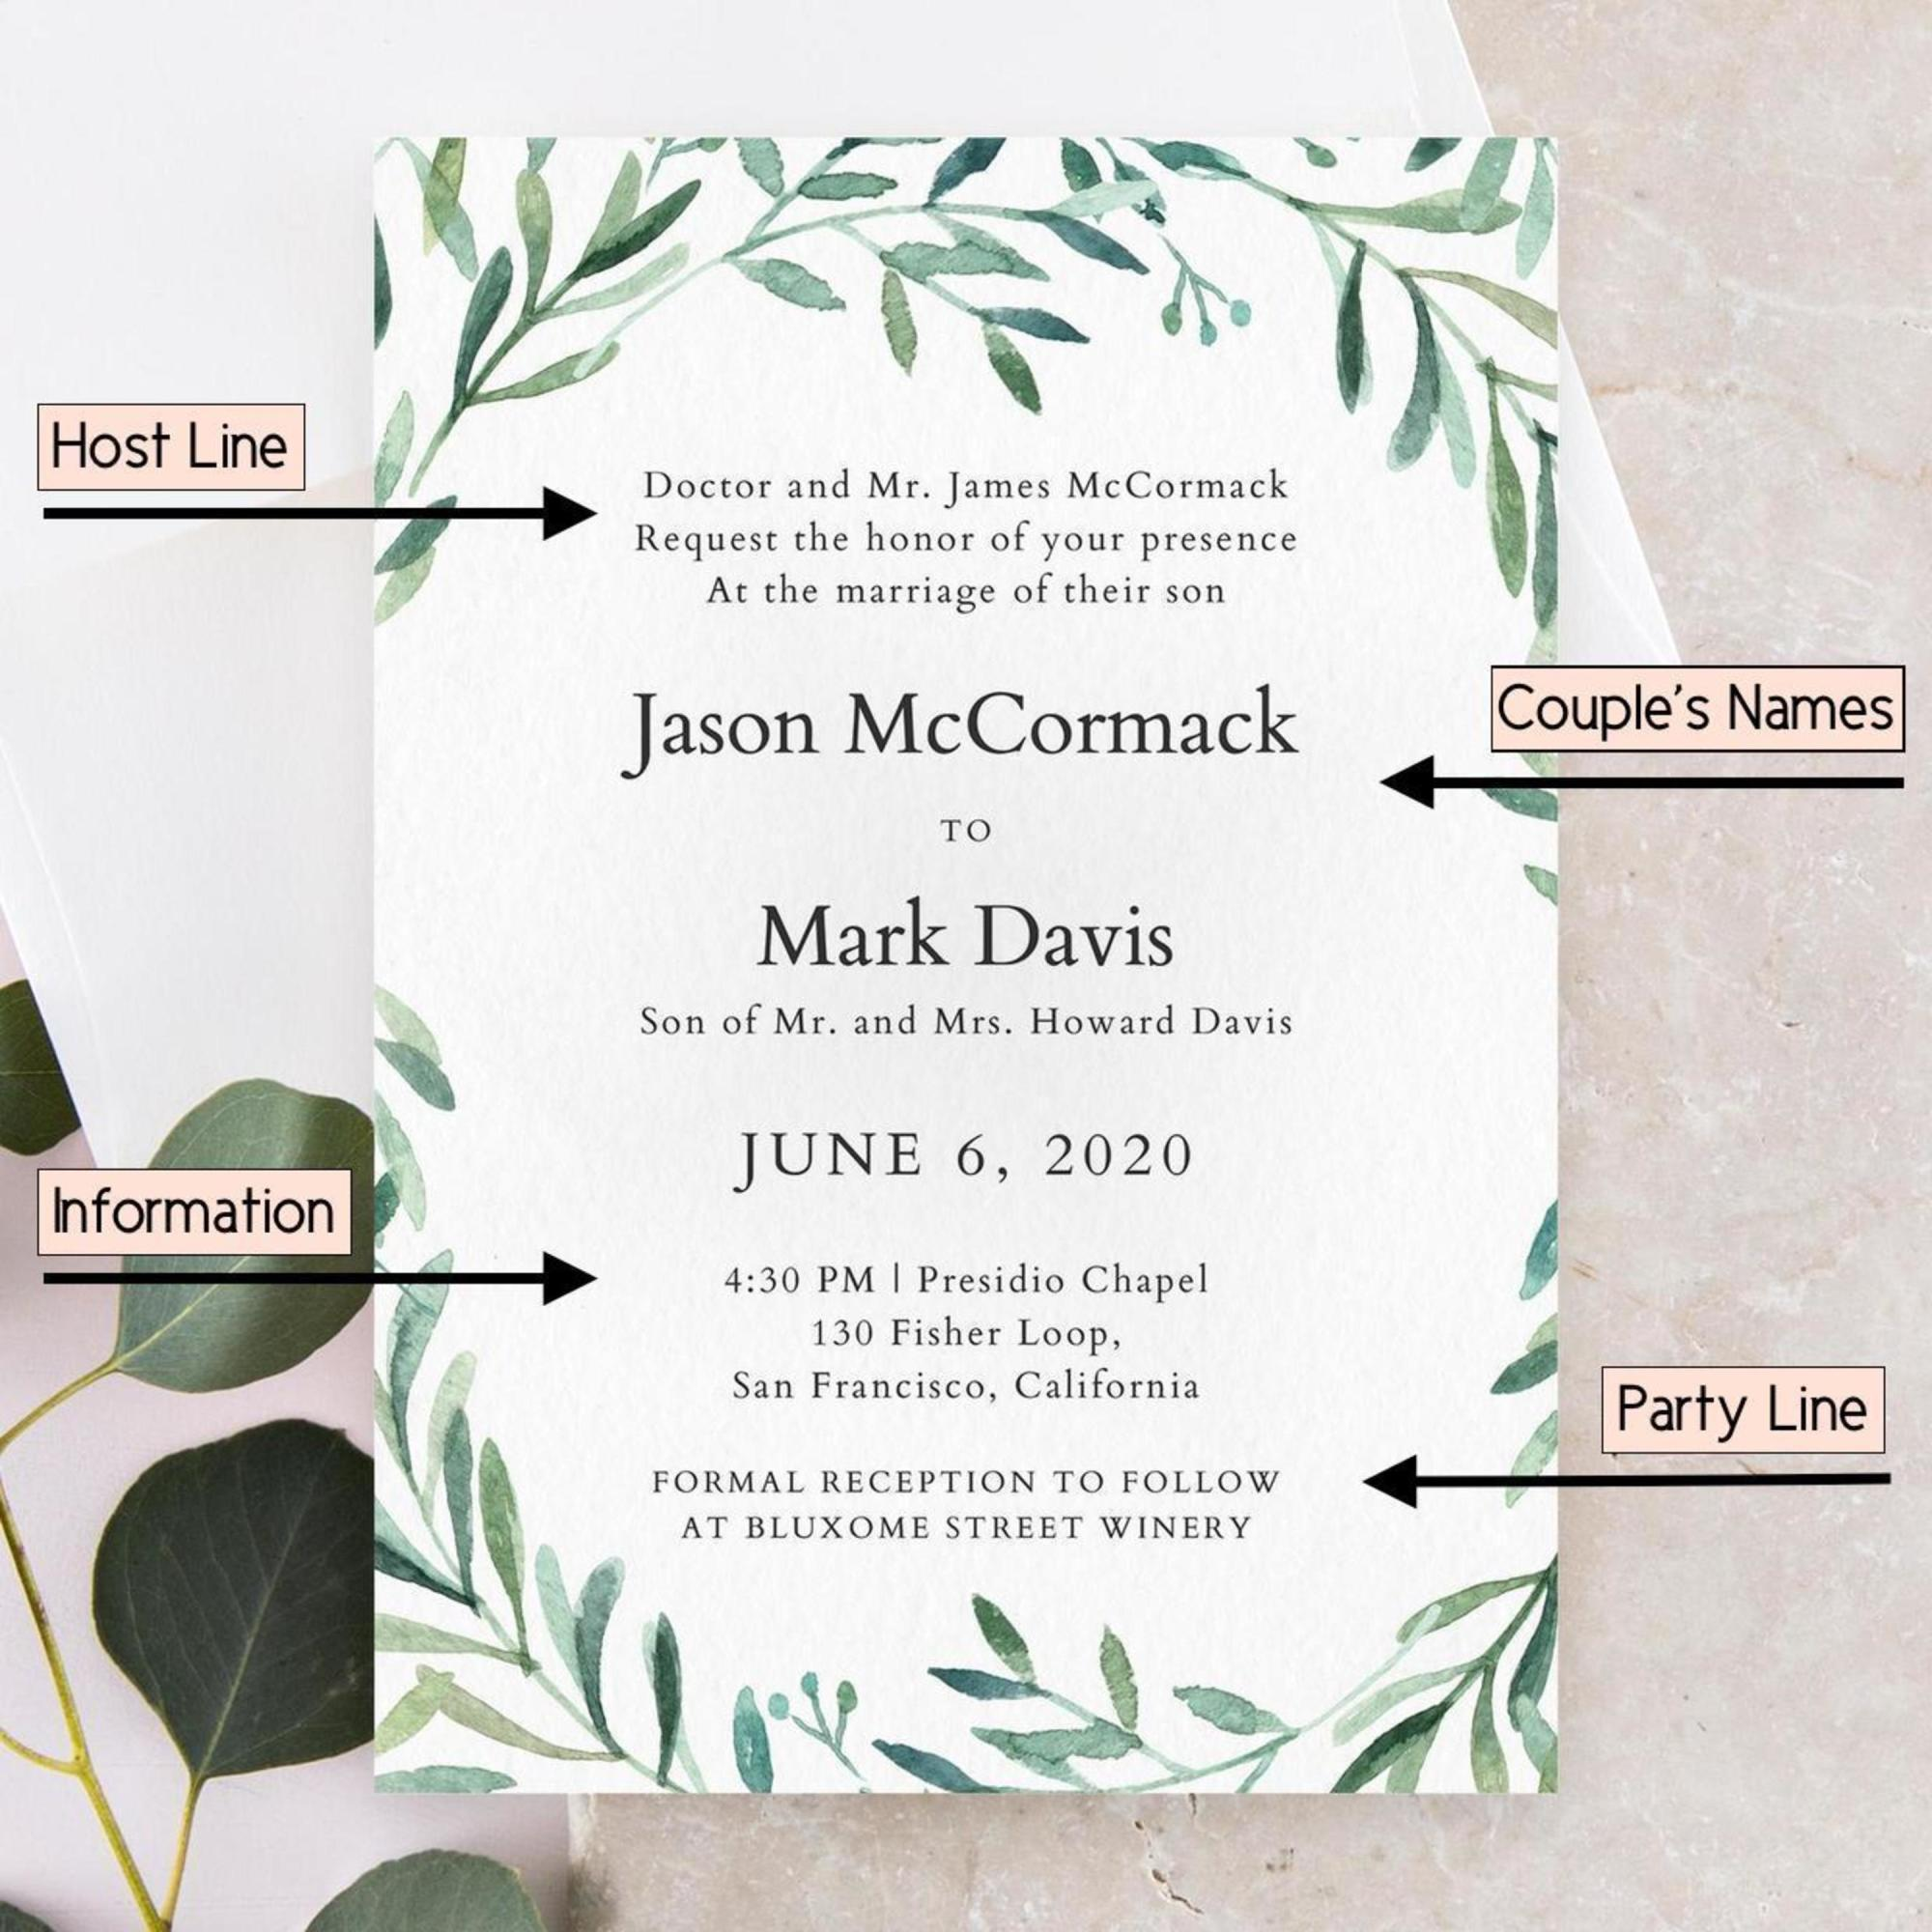 Words For Wedding Invites: How To Word Wedding Invitations